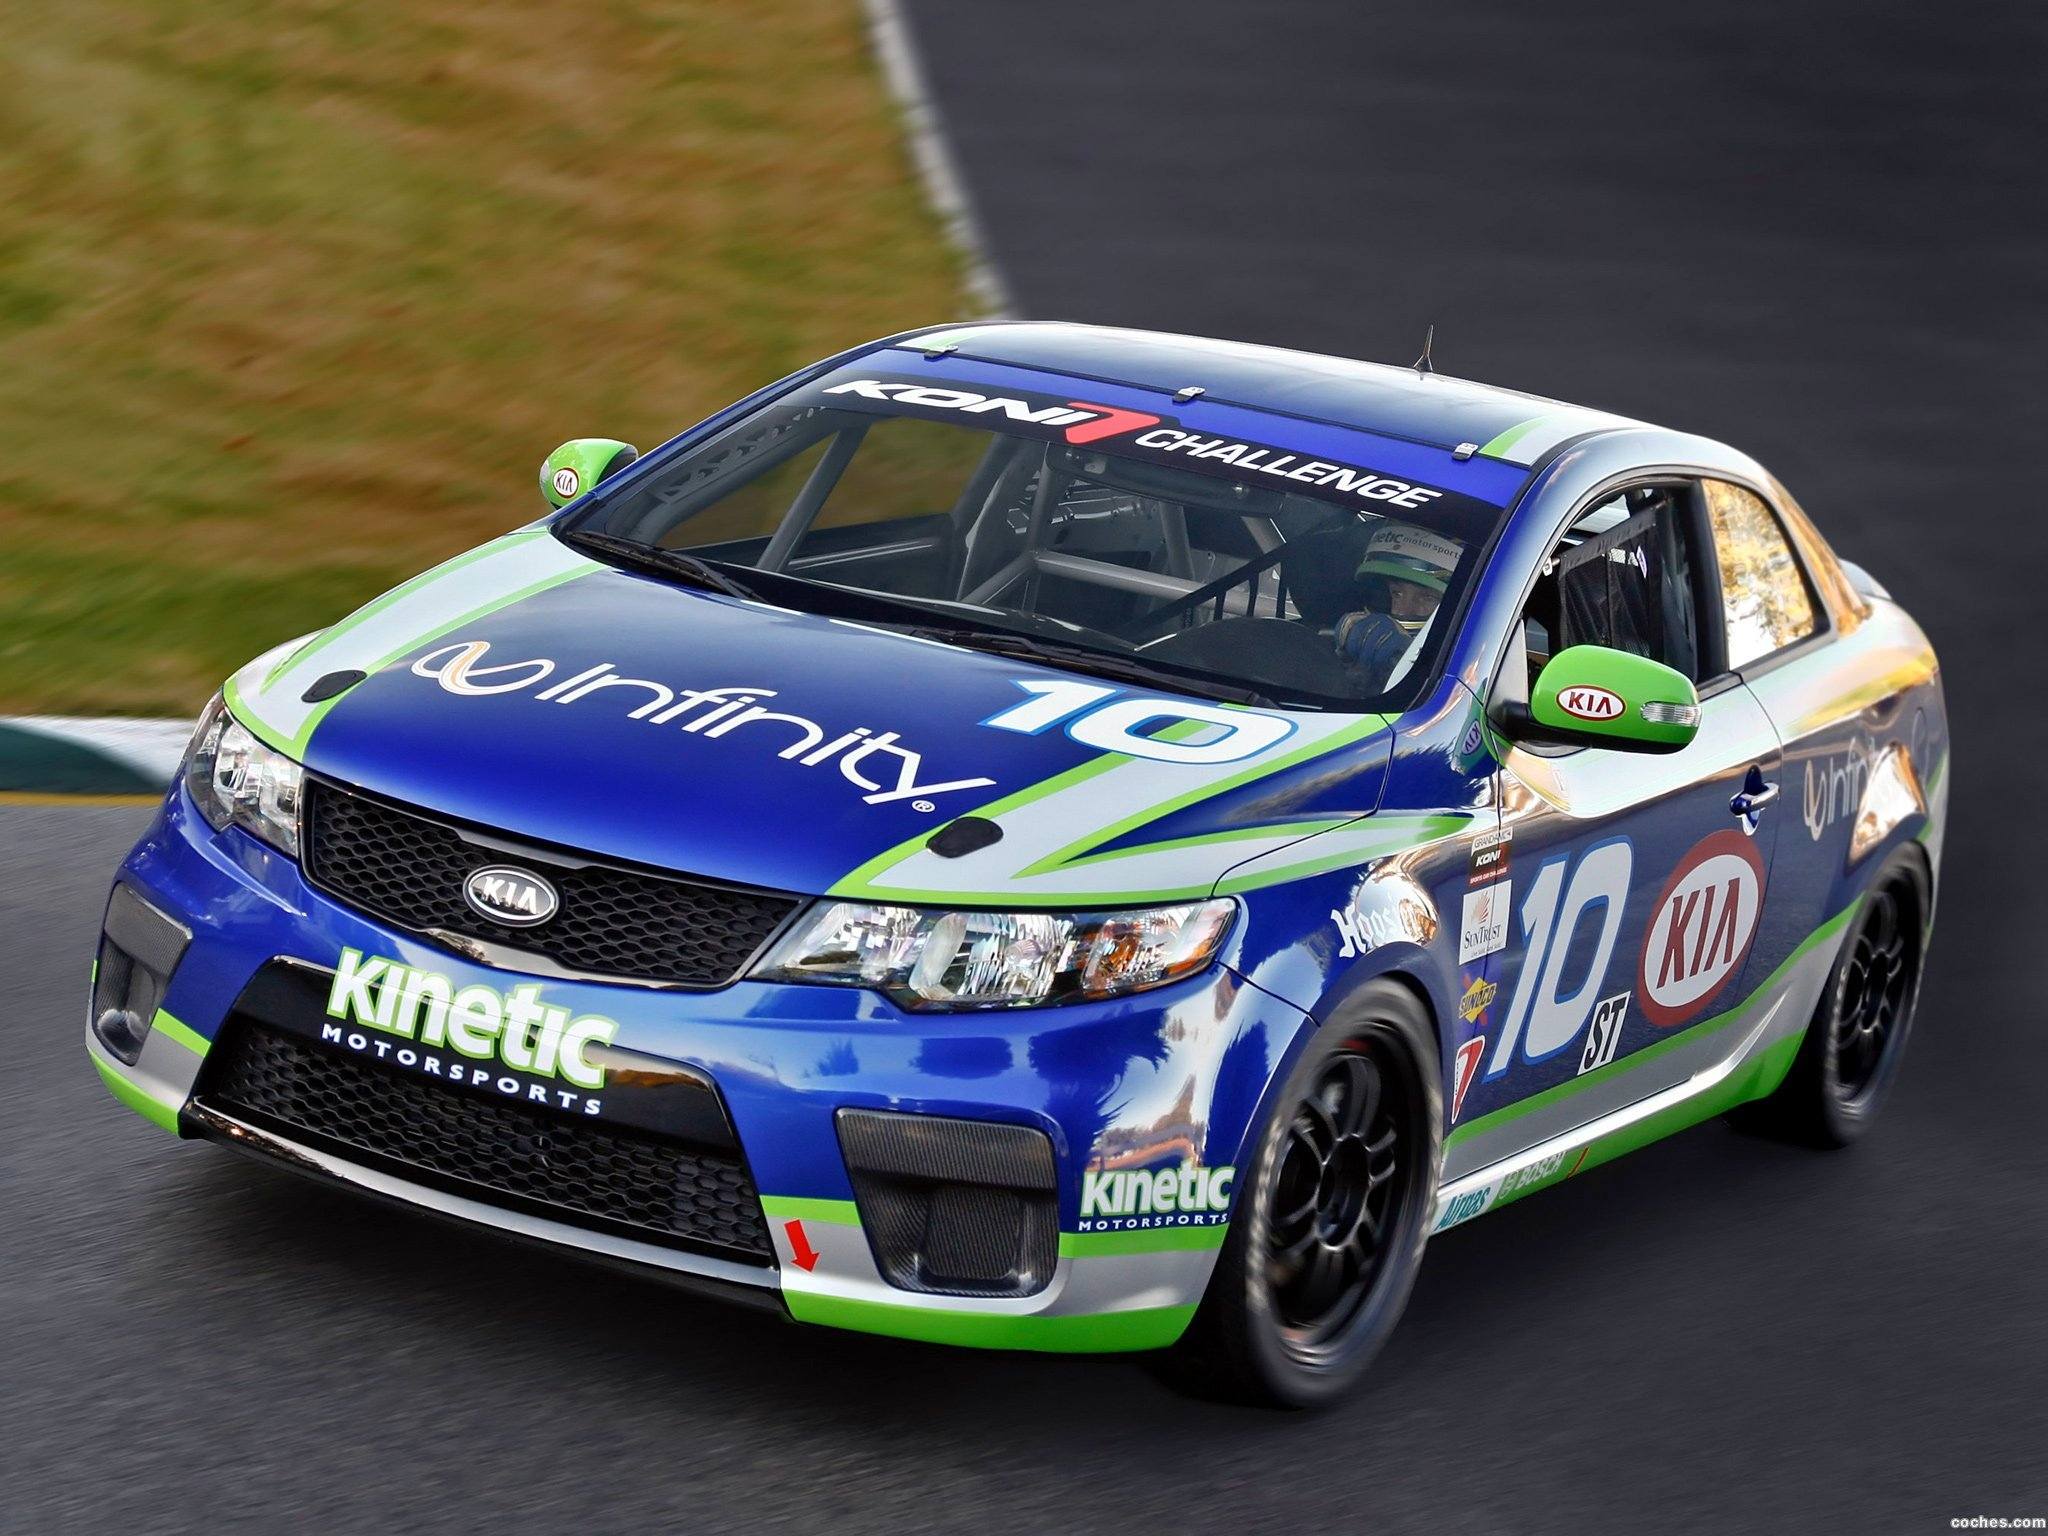 Foto 0 de Kia Forte Koup GRAND-AM Race Car 2010